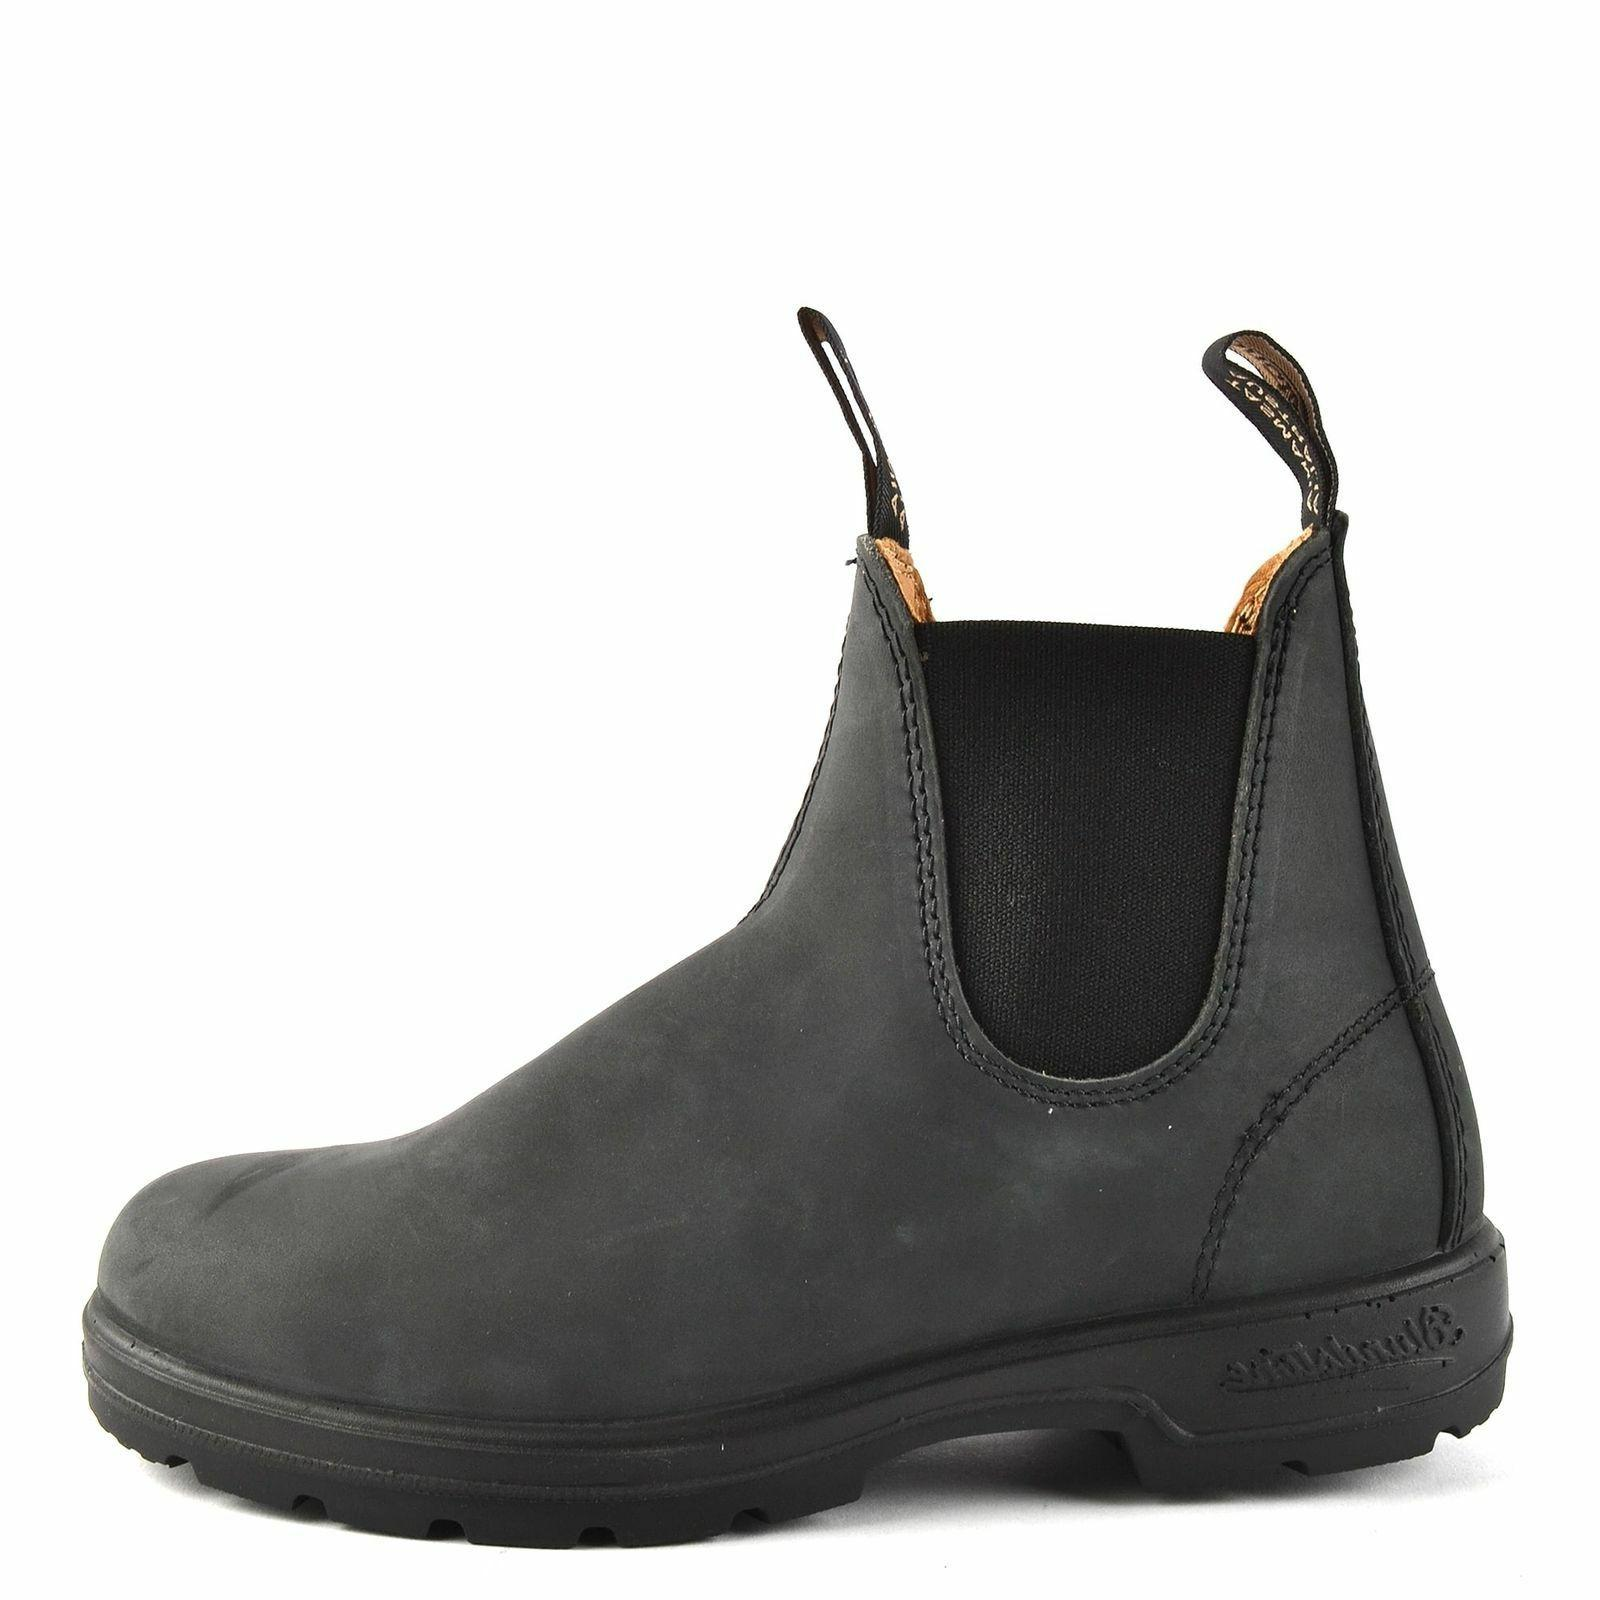 new style 587 rustic black leather boots